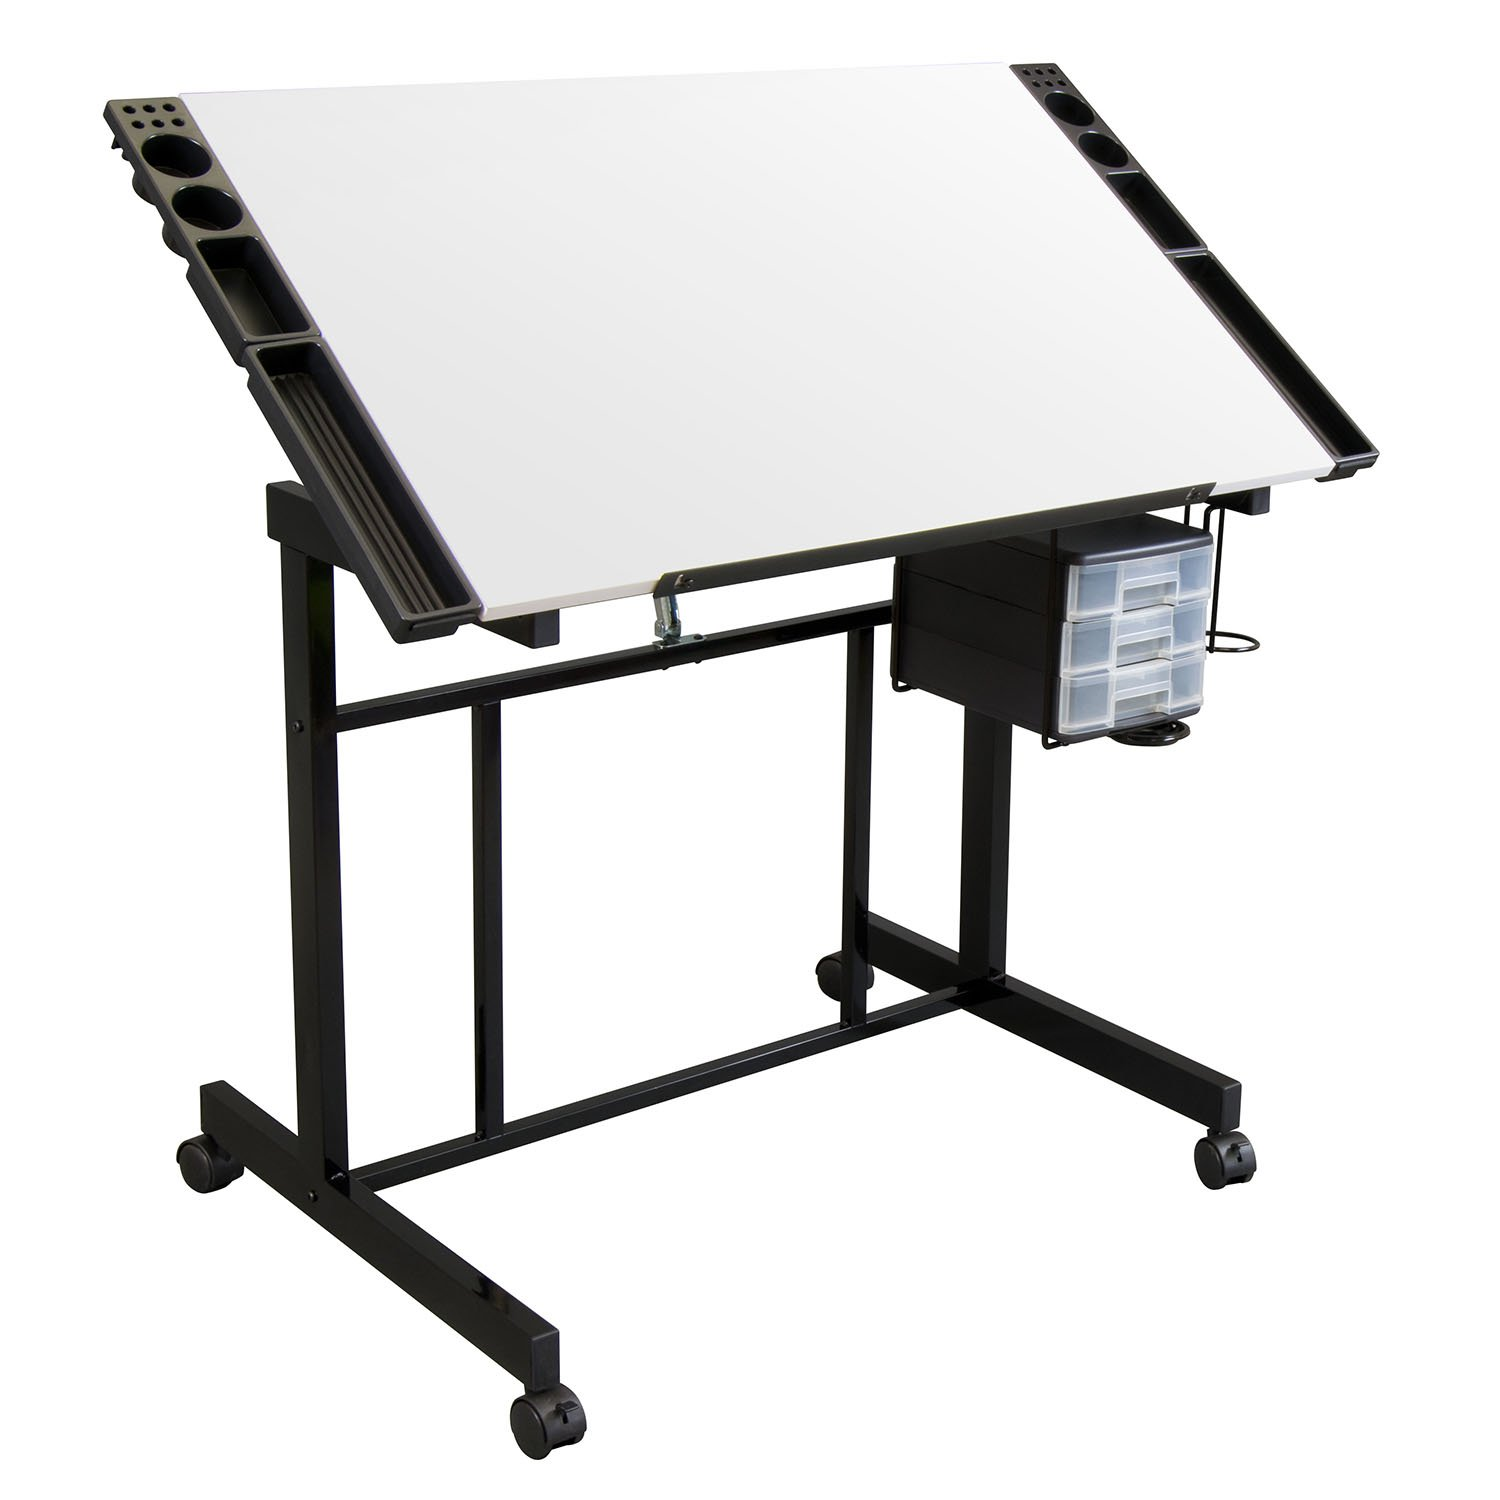 Offex Home Deluxe Craft Station - Black/White OF-13250